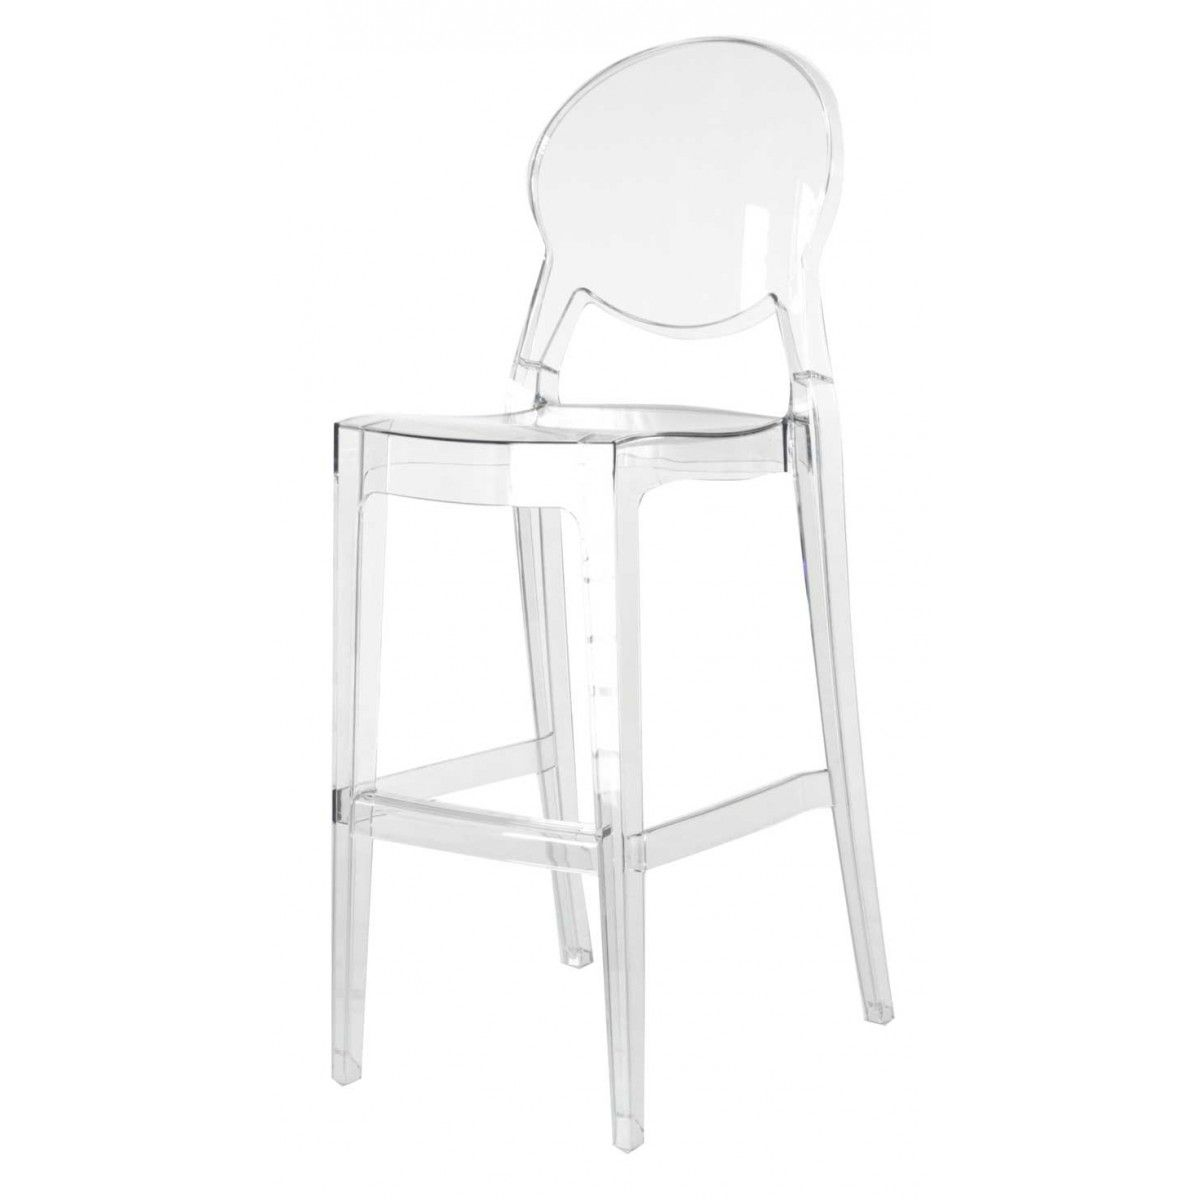 2 X Tabouret De Bar Transparent Polycarbonate Igloo Chaise De Bar Design Tabouret De Bar Chaise Bar